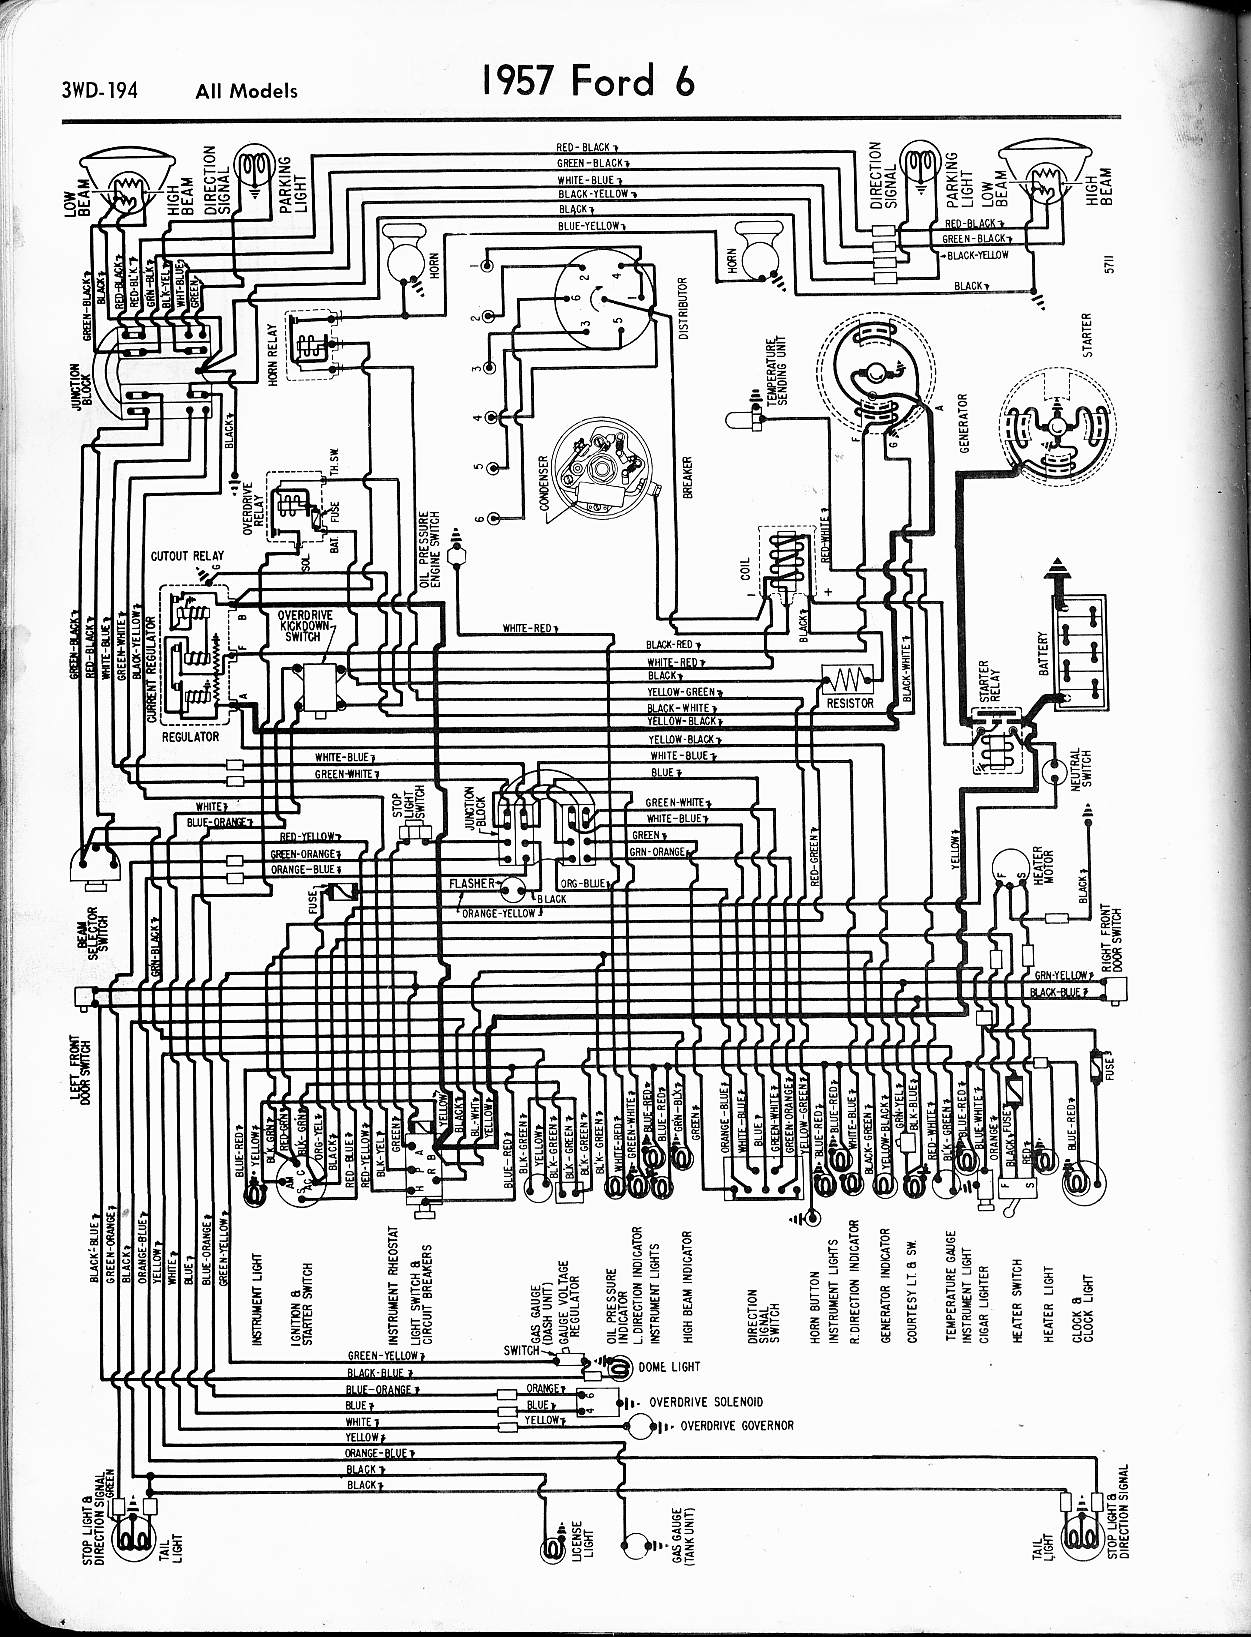 MWire5765 194 1955 ford wiring diagram 2014 dodge 2500 wiring diagram \u2022 free 1955 ford wiring diagram at alyssarenee.co